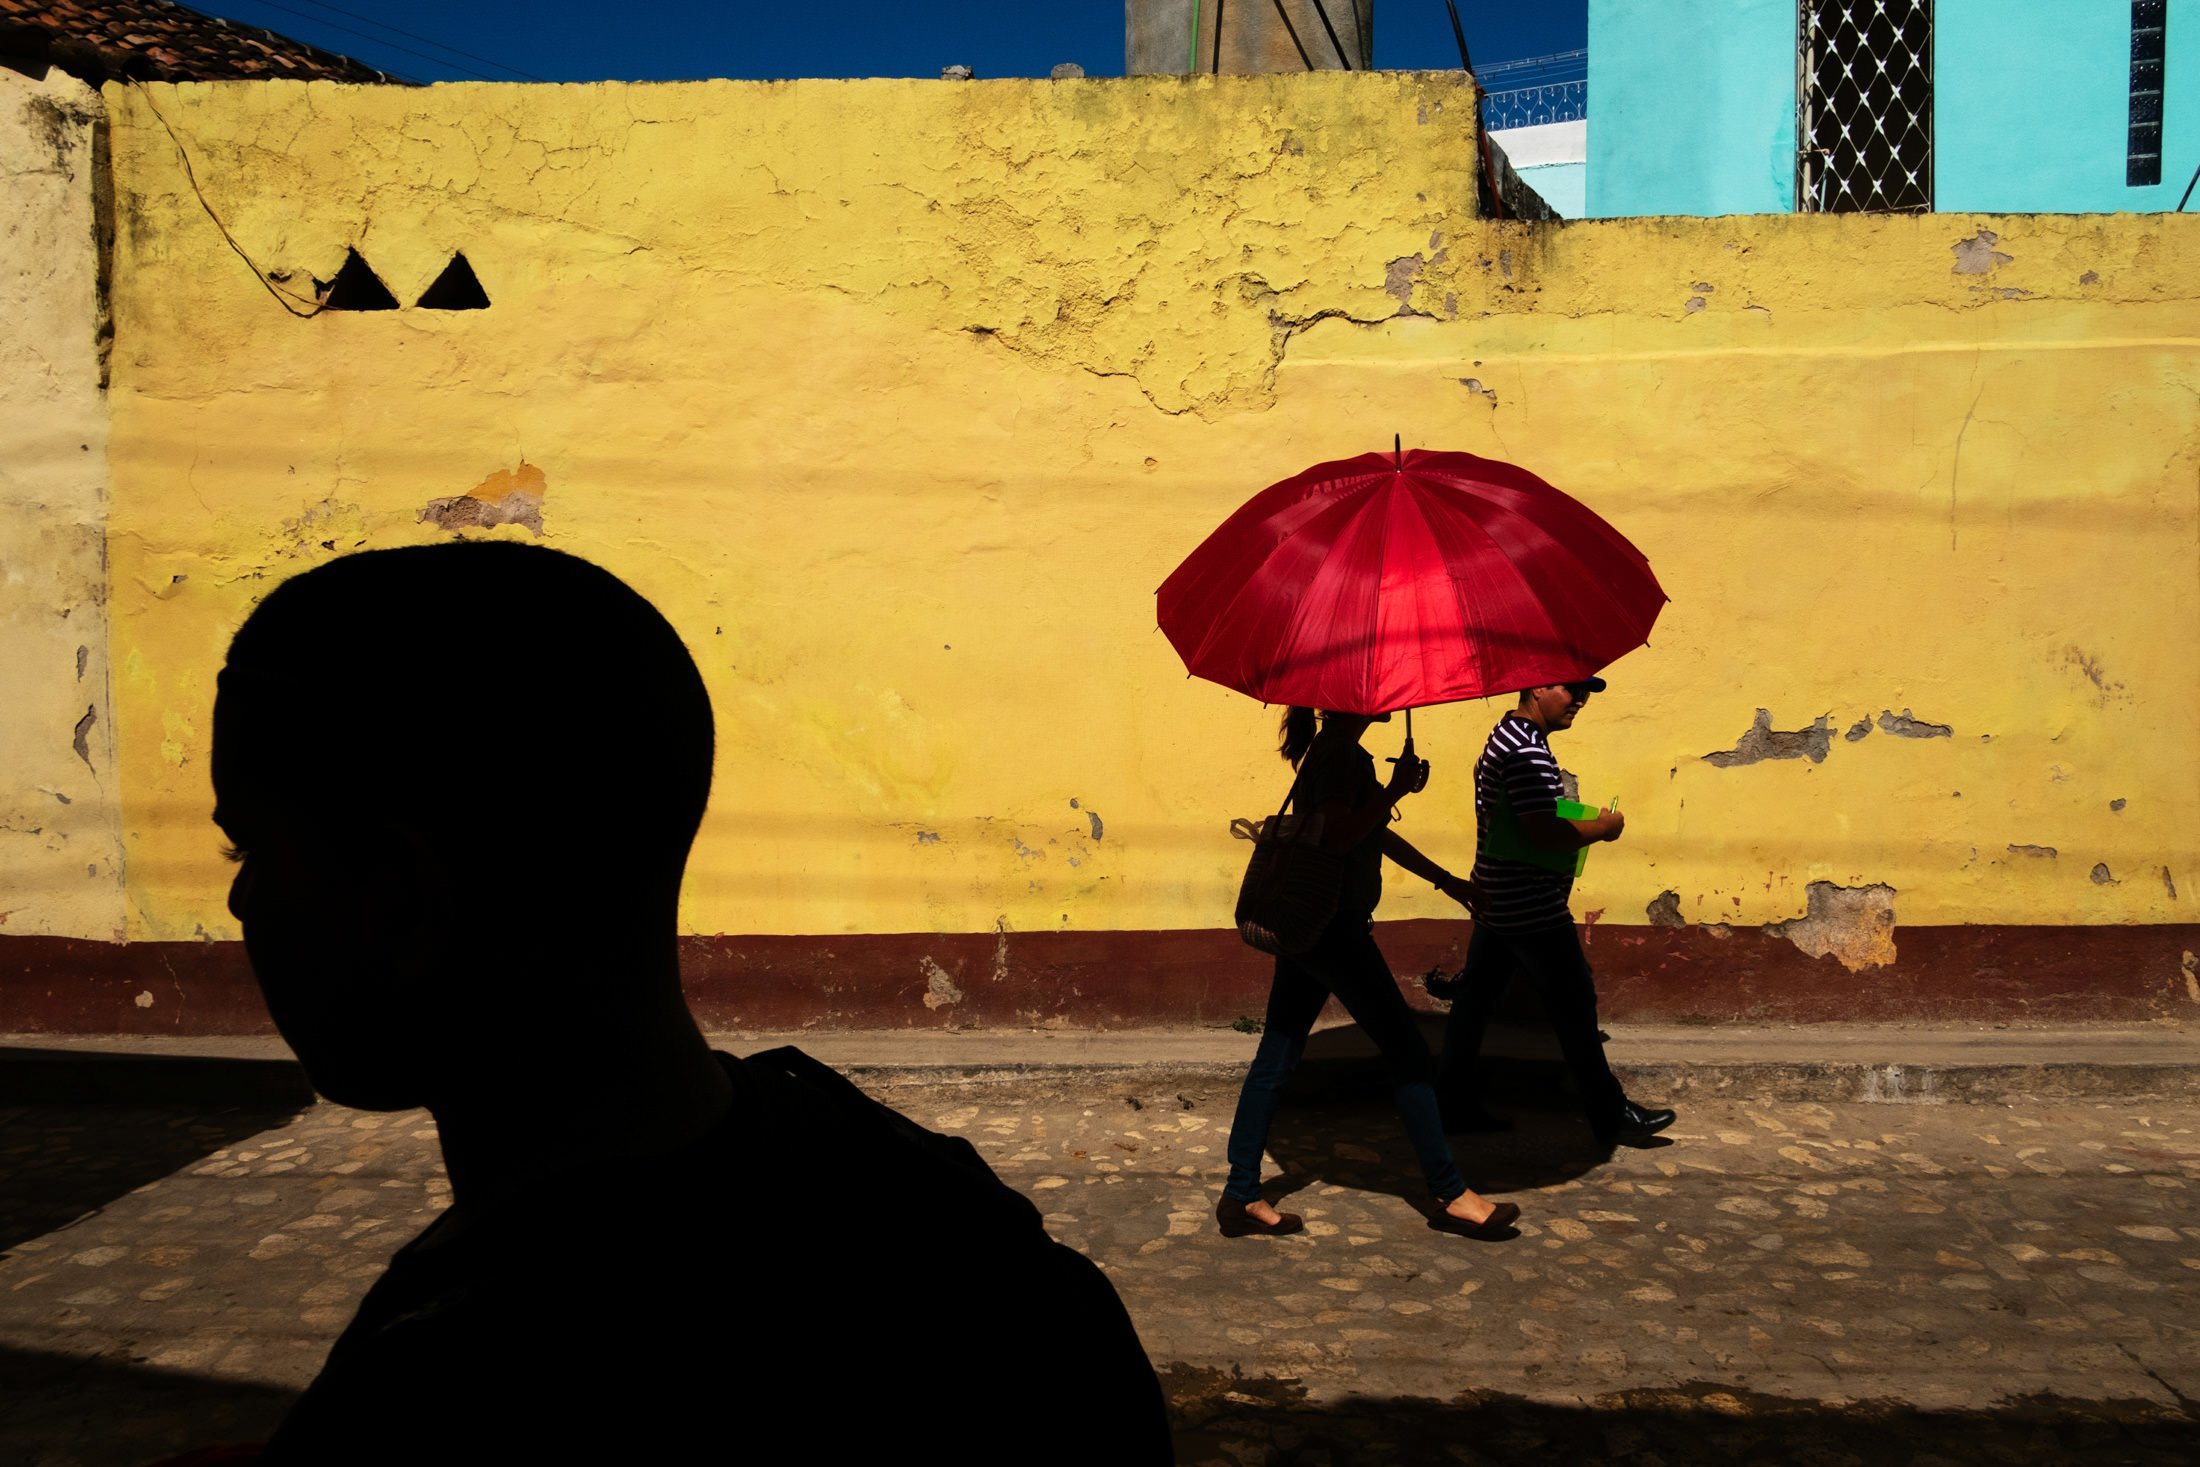 silhouette of a child walking past two people holding a red umbrella in Cuba